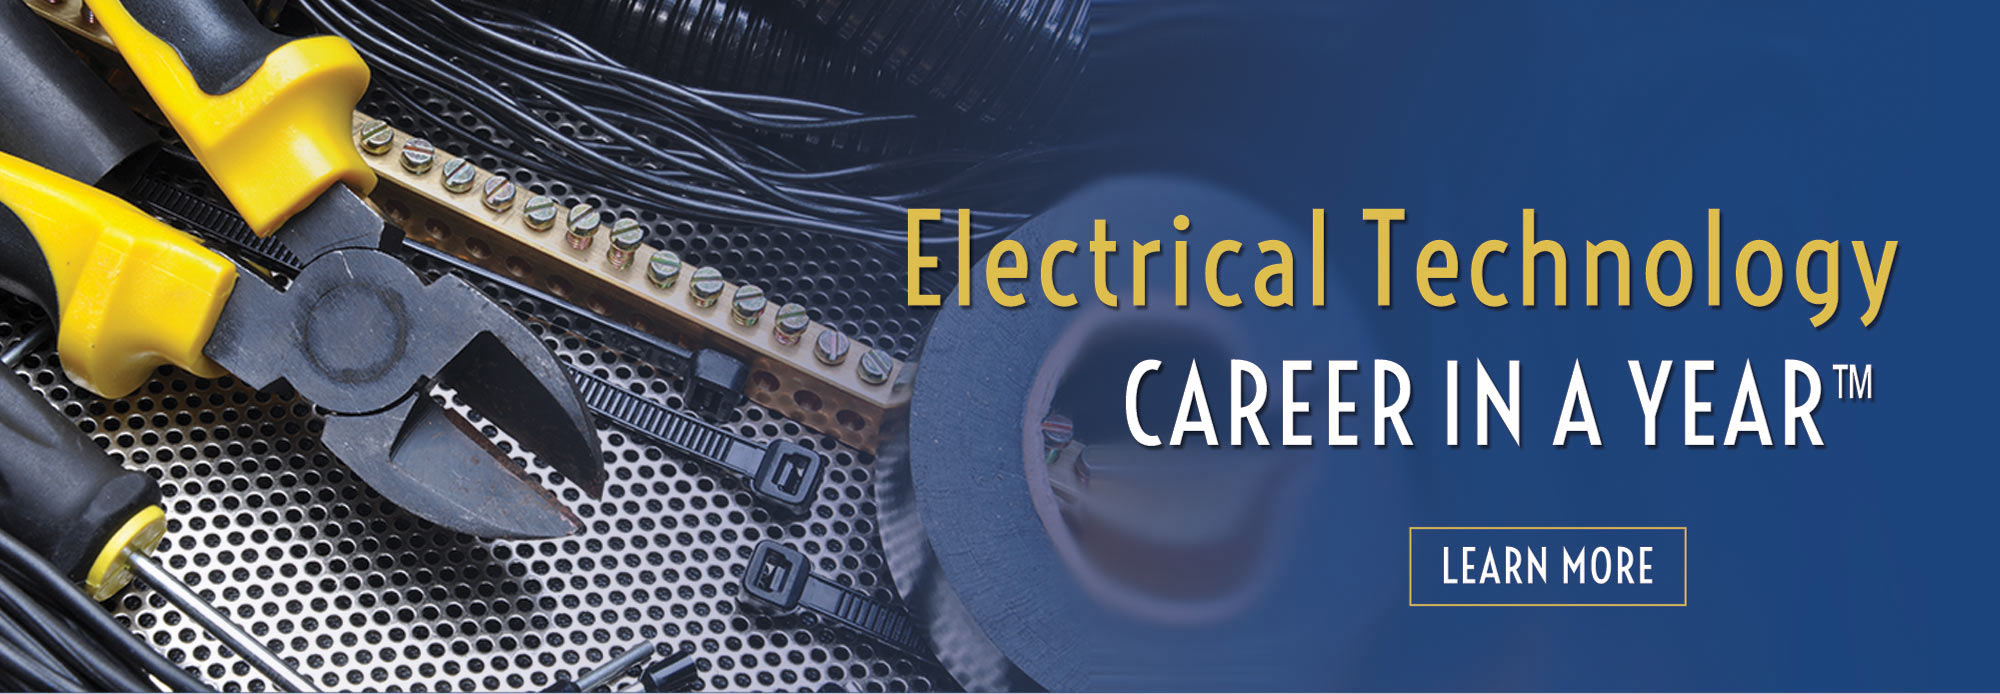 Electrical Technology Career in a Year